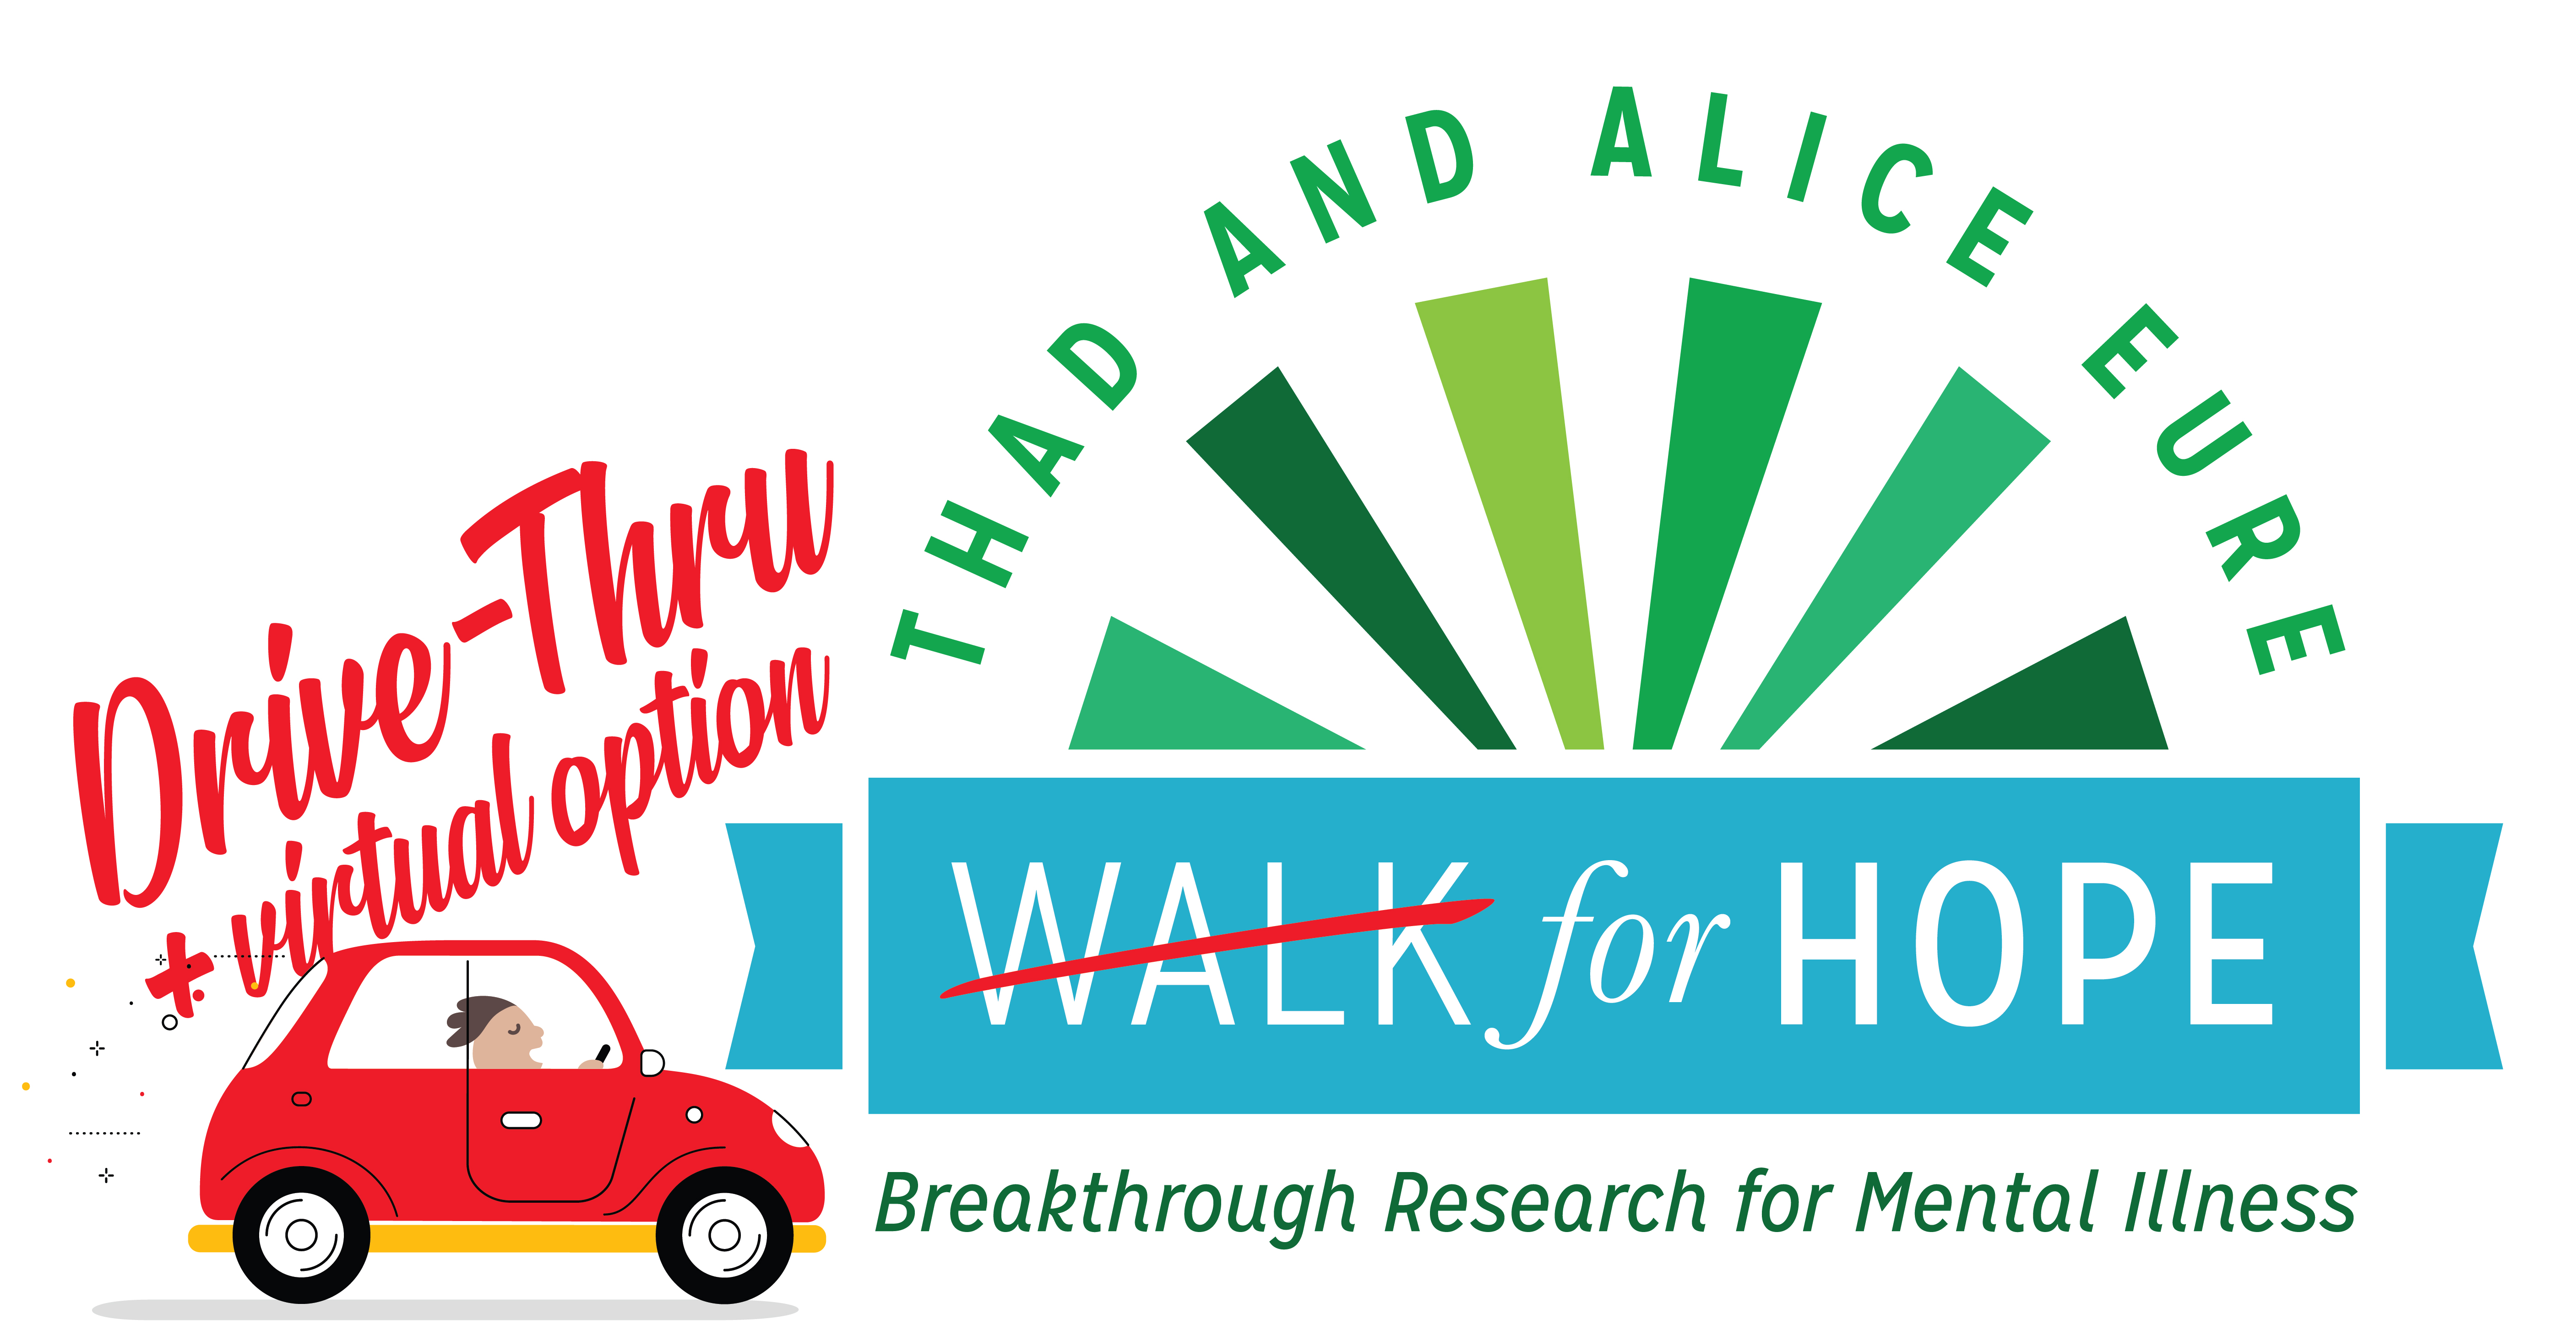 32nd Annual Thad & Alice Eure Walk/Run for Hope